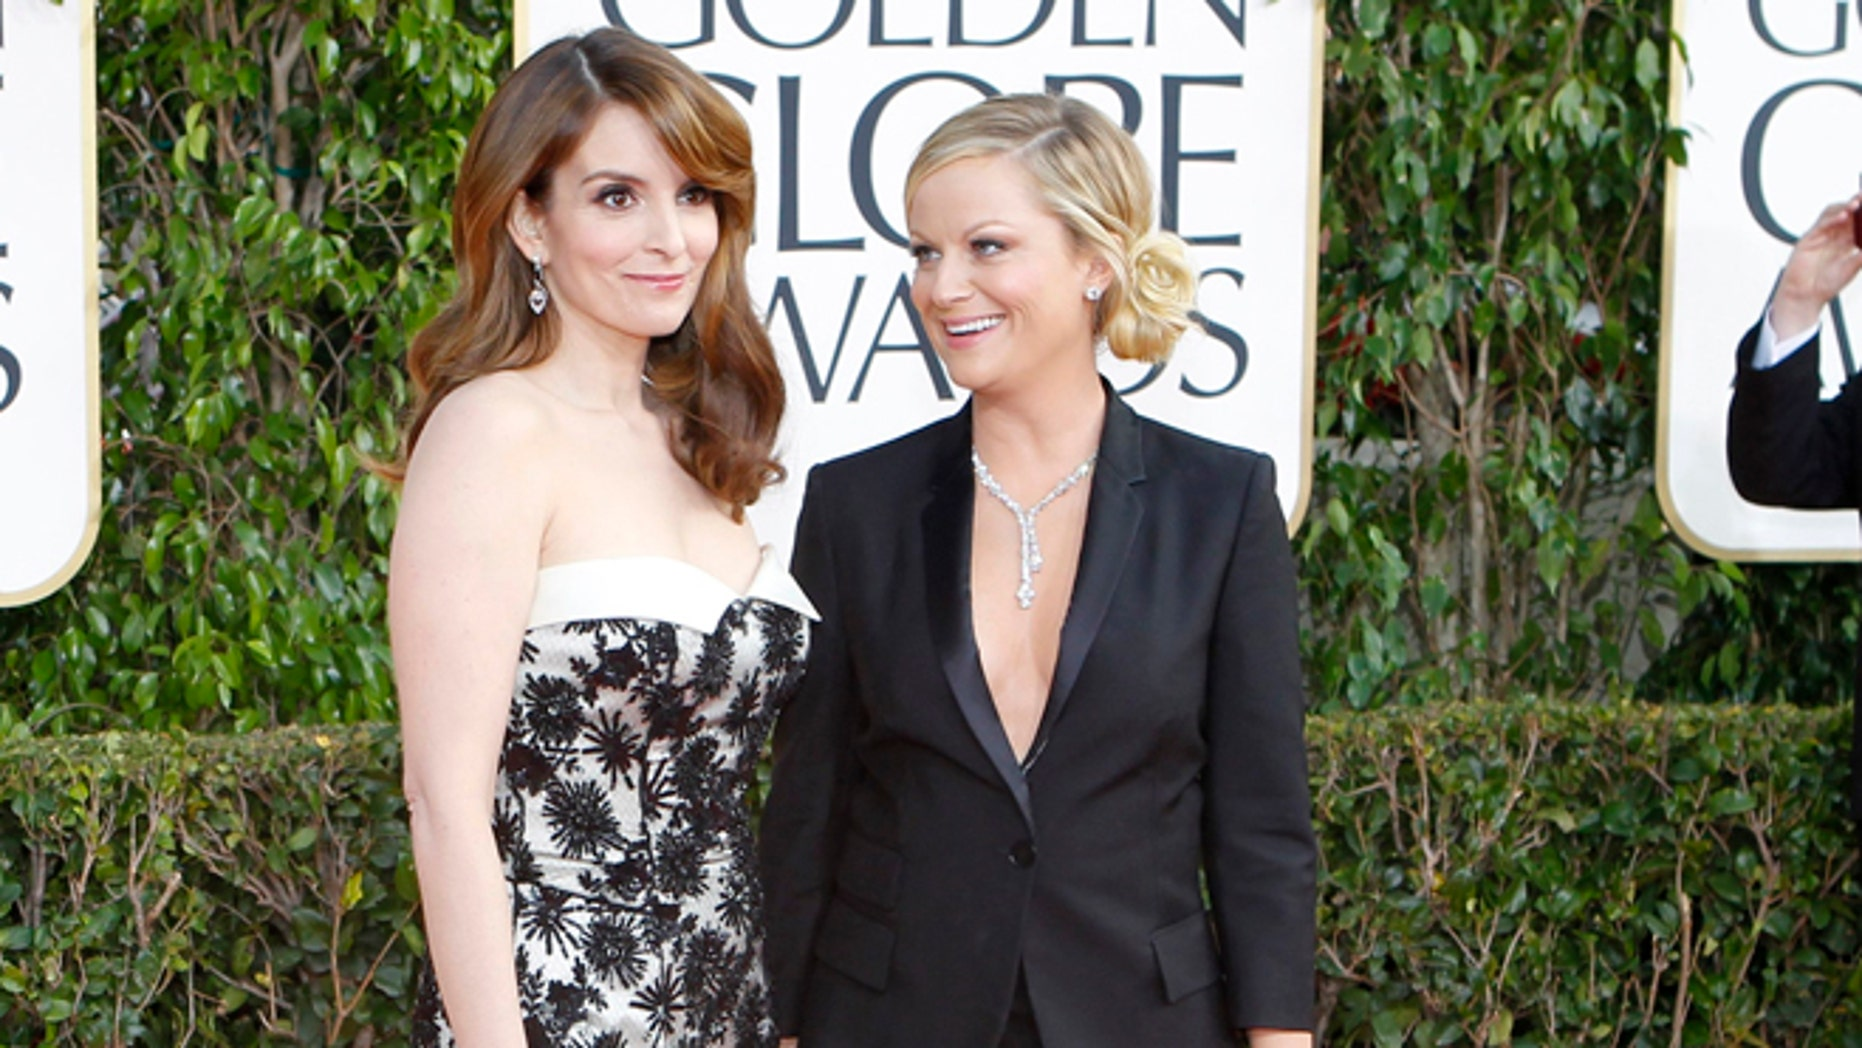 Golden Globe co-hosts, actresses Tina Fey (L) and Amy Poehler, arrive at the 70th annual Golden Globe Awards in Beverly Hills, California, January 13, 2013.